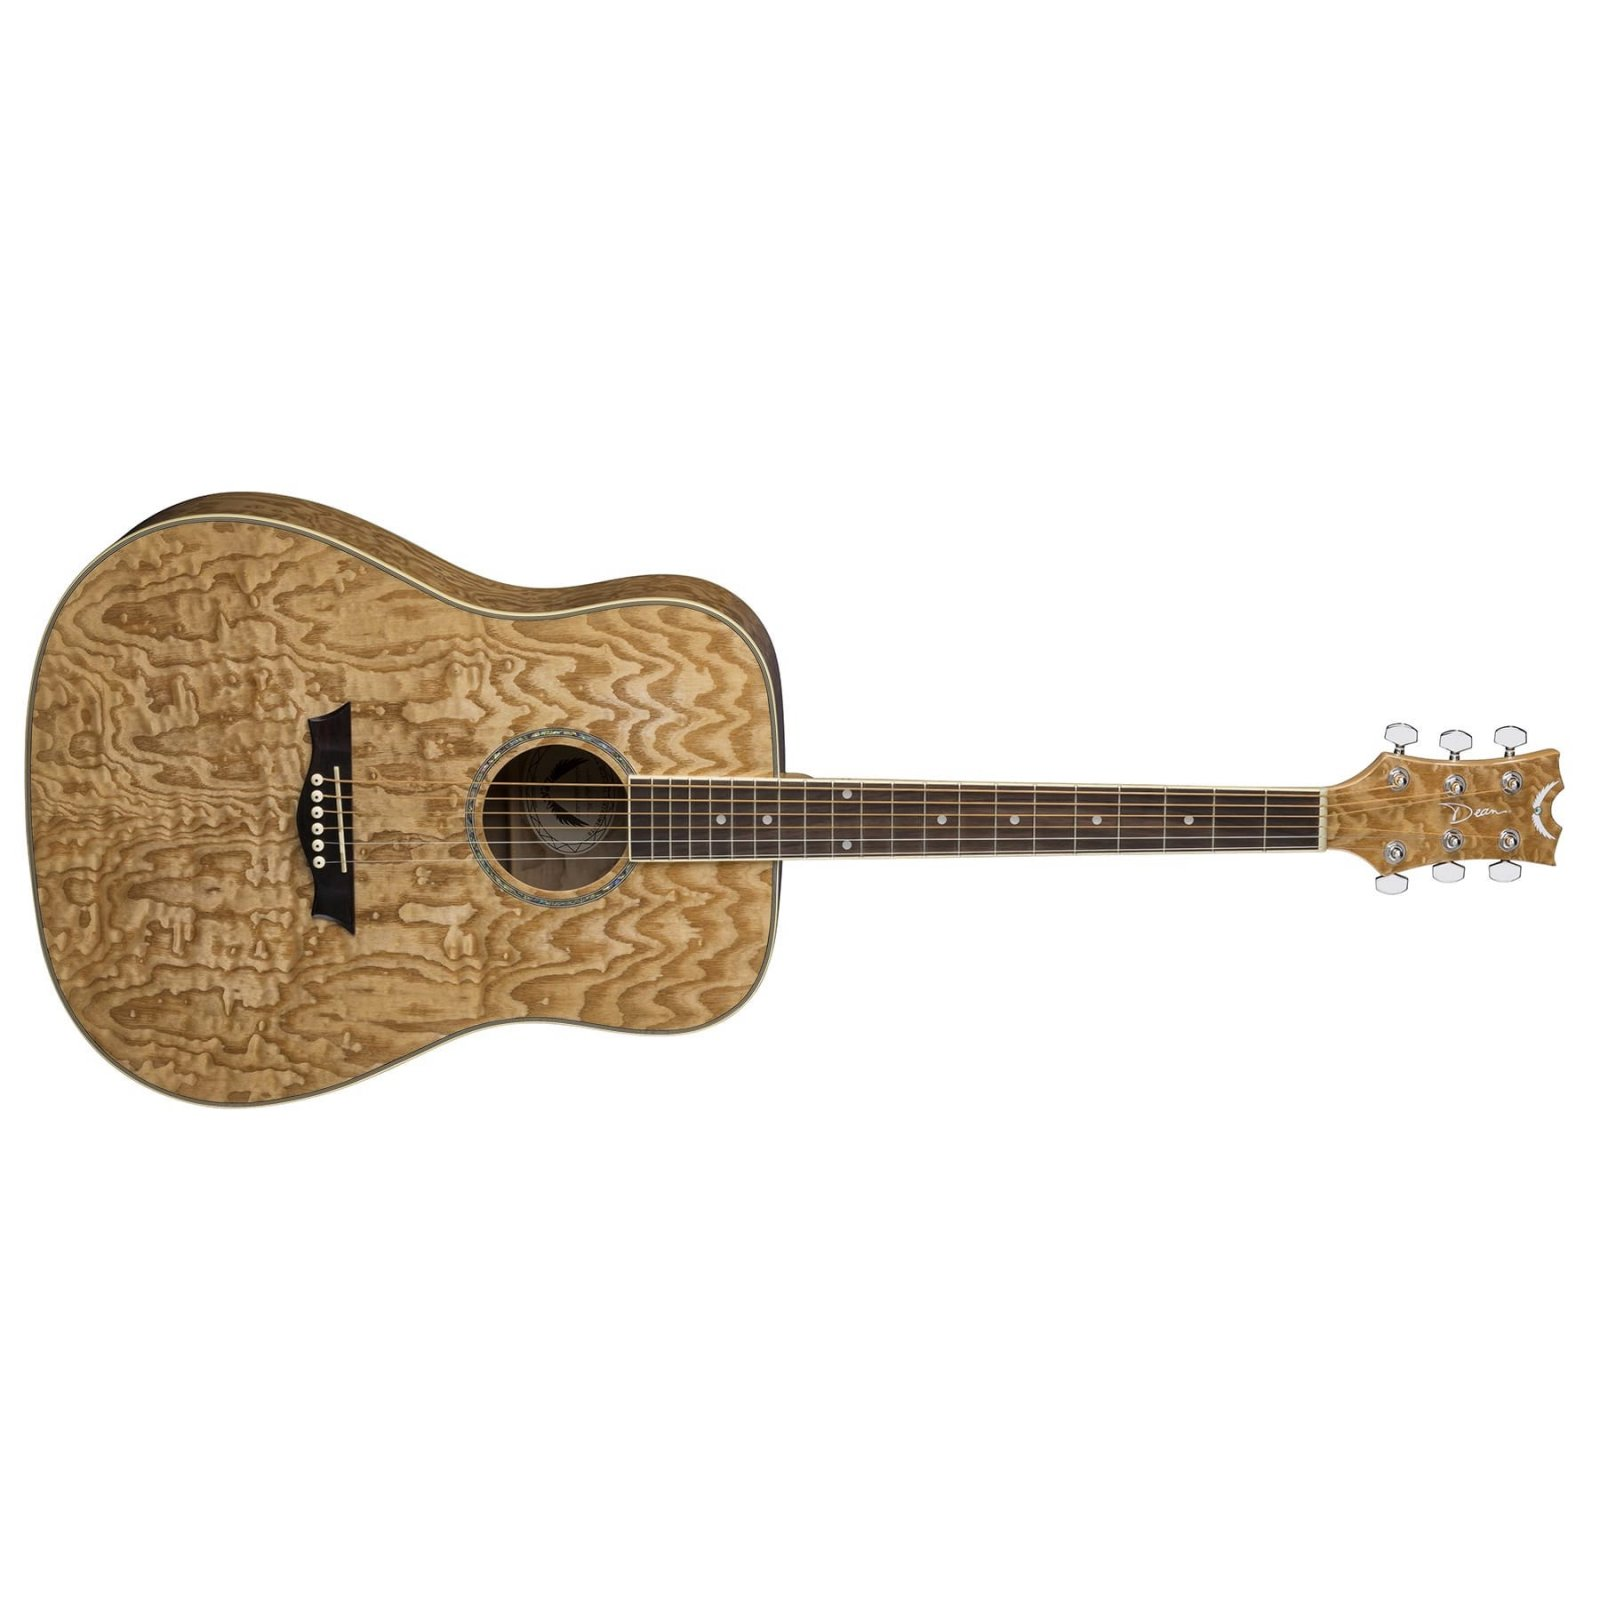 DEAN AXS DREAD QUILT ASH - GLOSS NATURAL